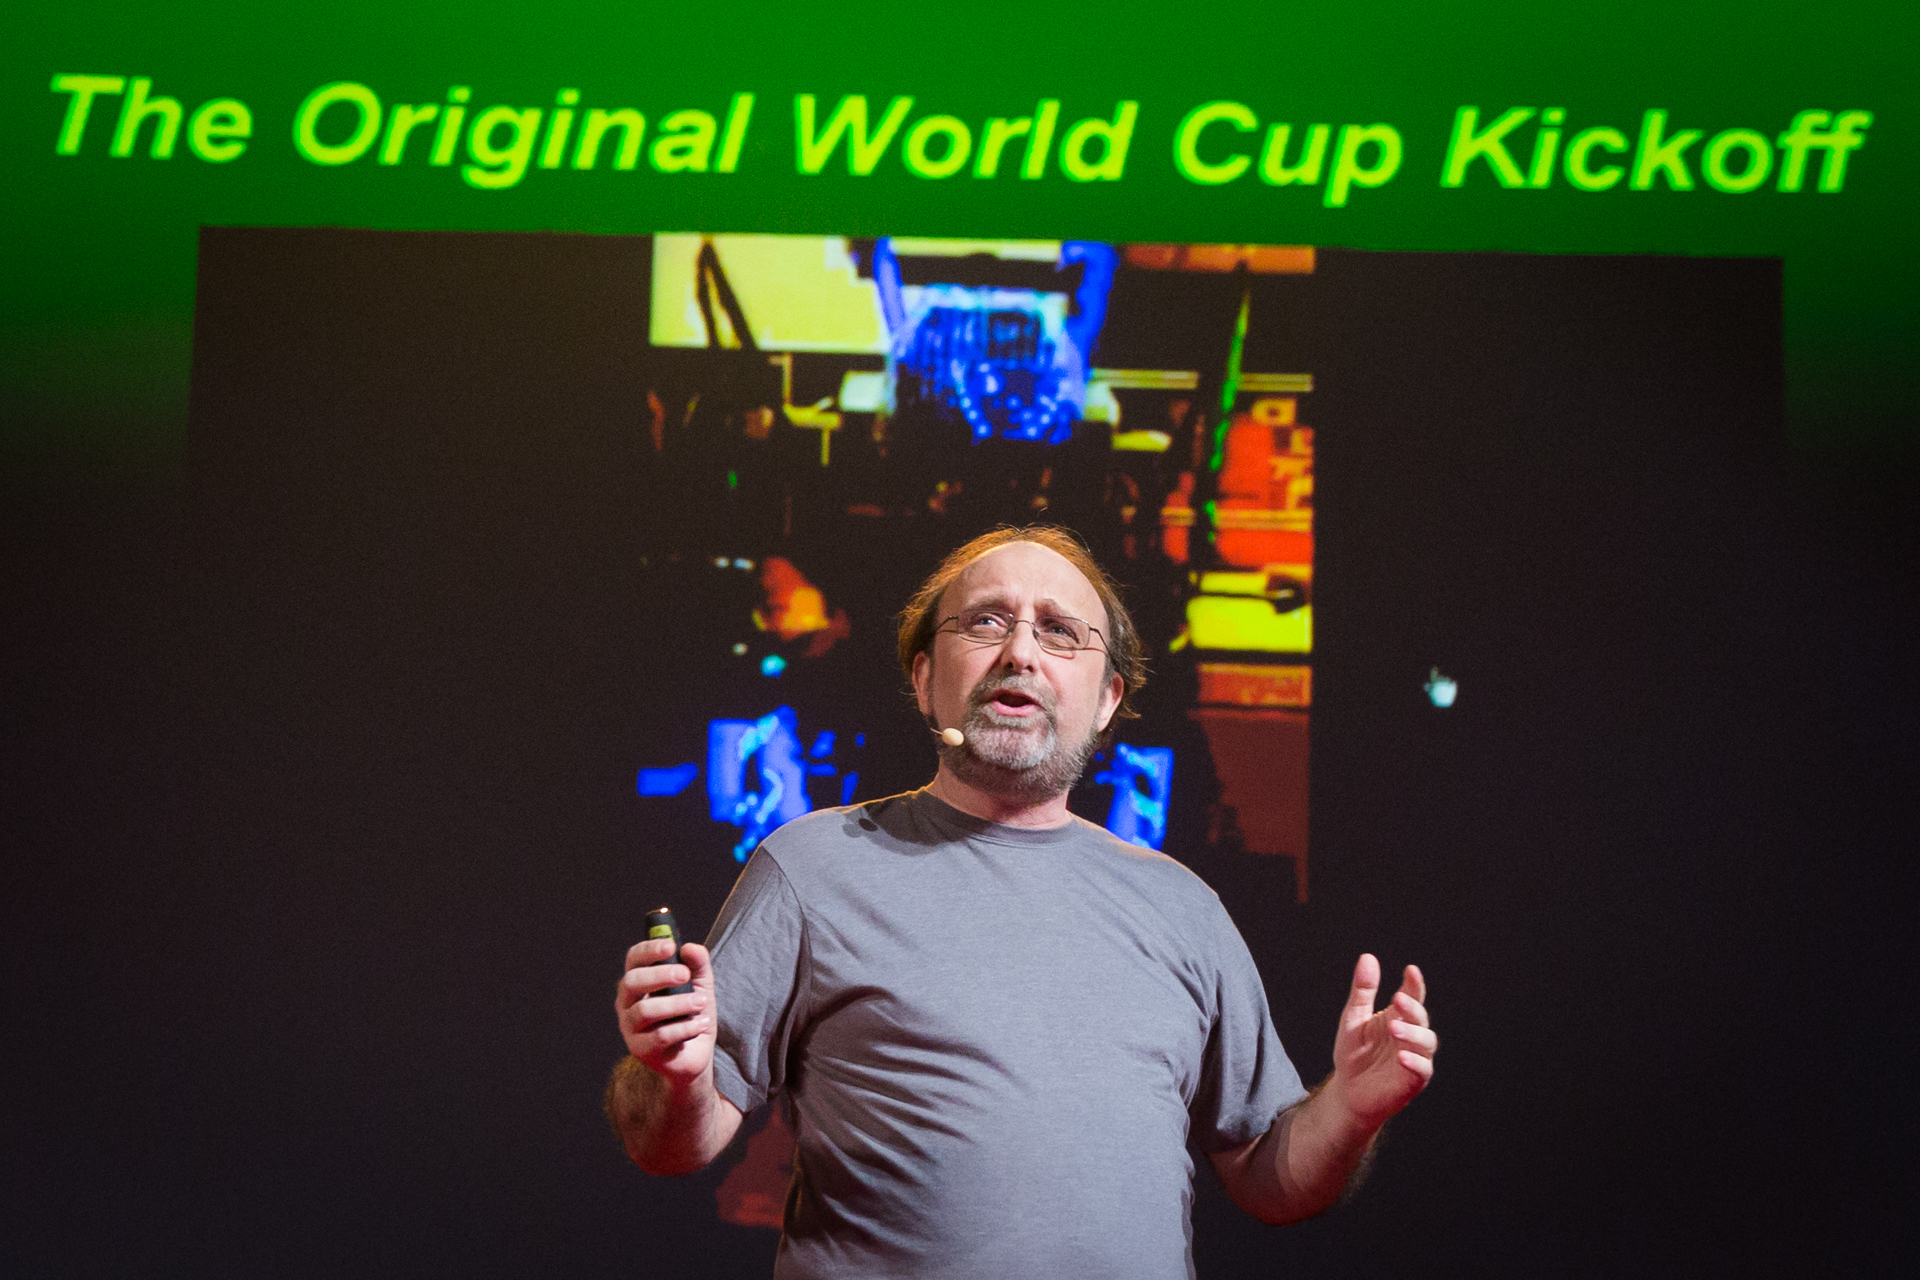 Miguel Nicolelis speaks at TEDGlobal 2014. Photo: James Duncan Davidson/TED